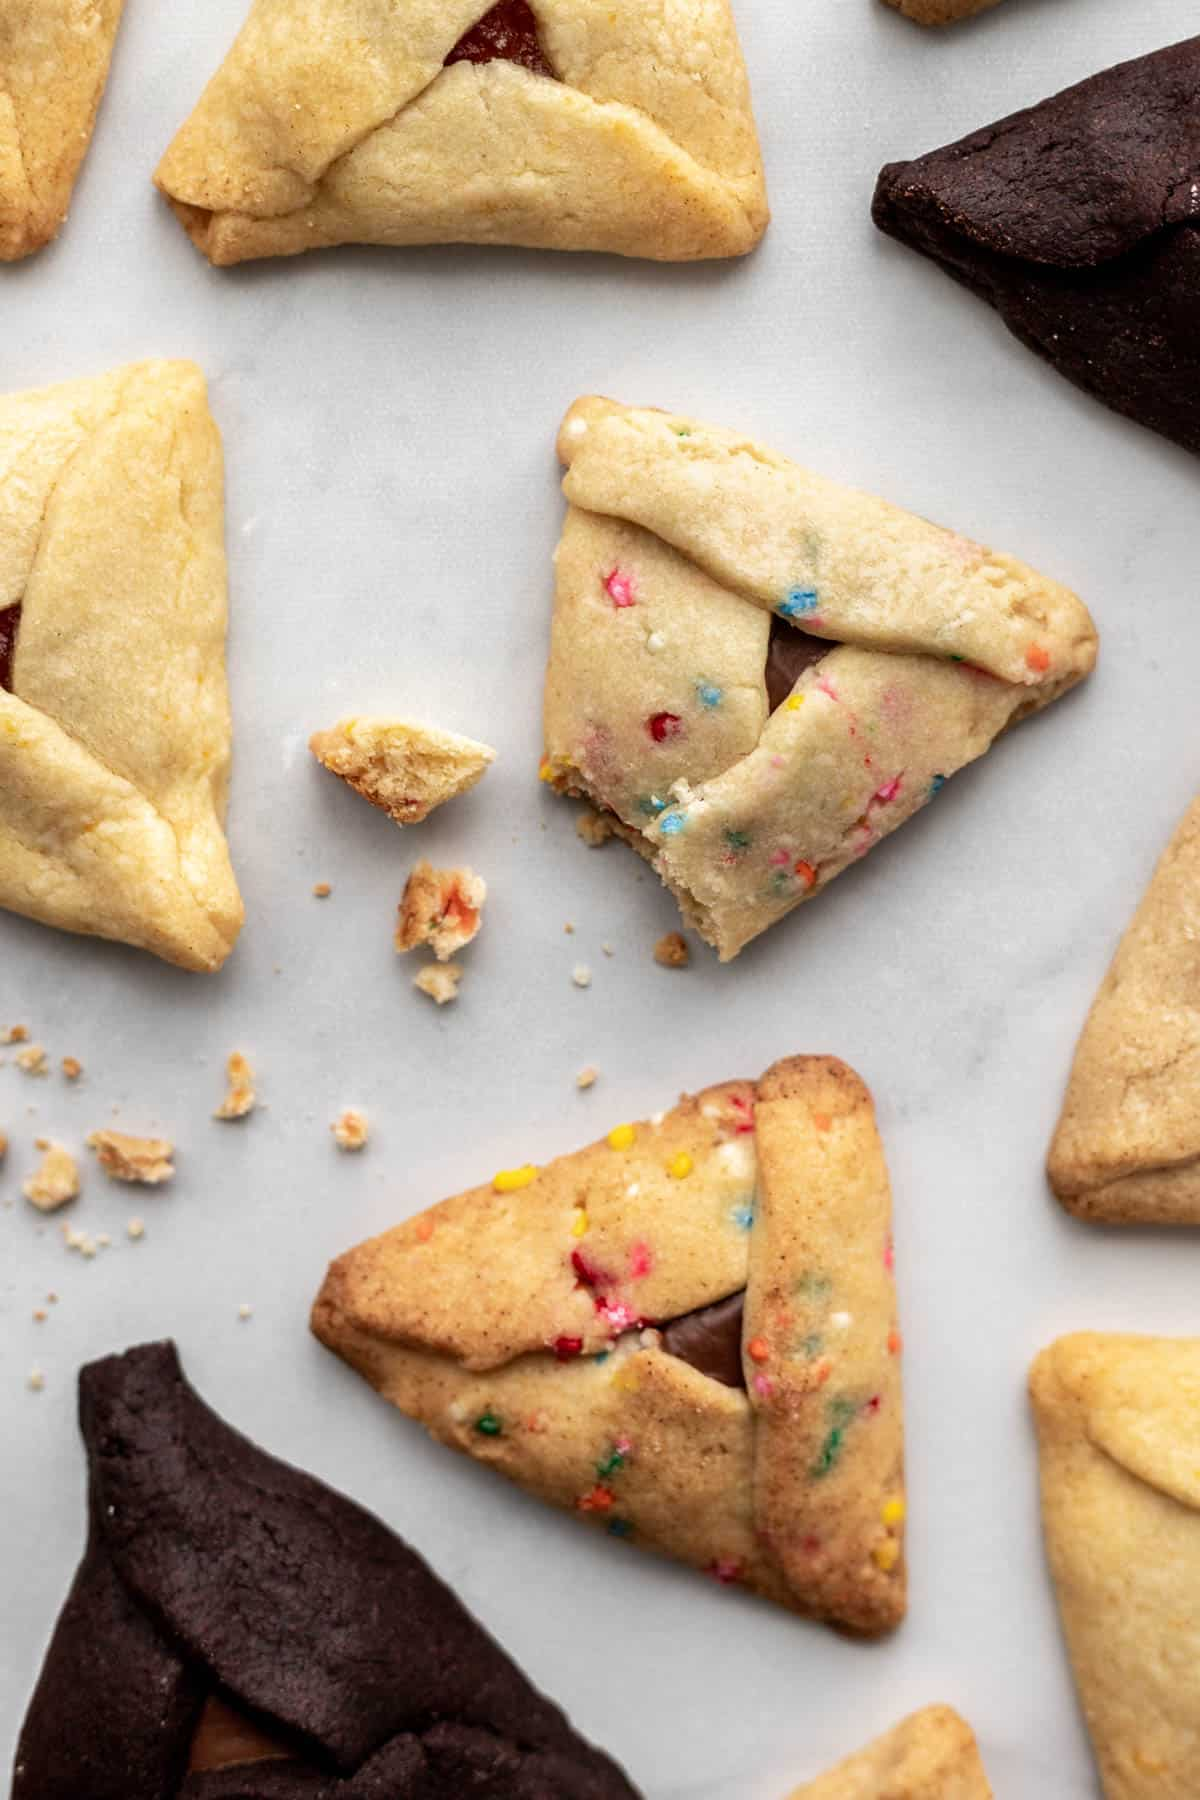 Easy hamantaschen scattered on a white surface with some crumbs.